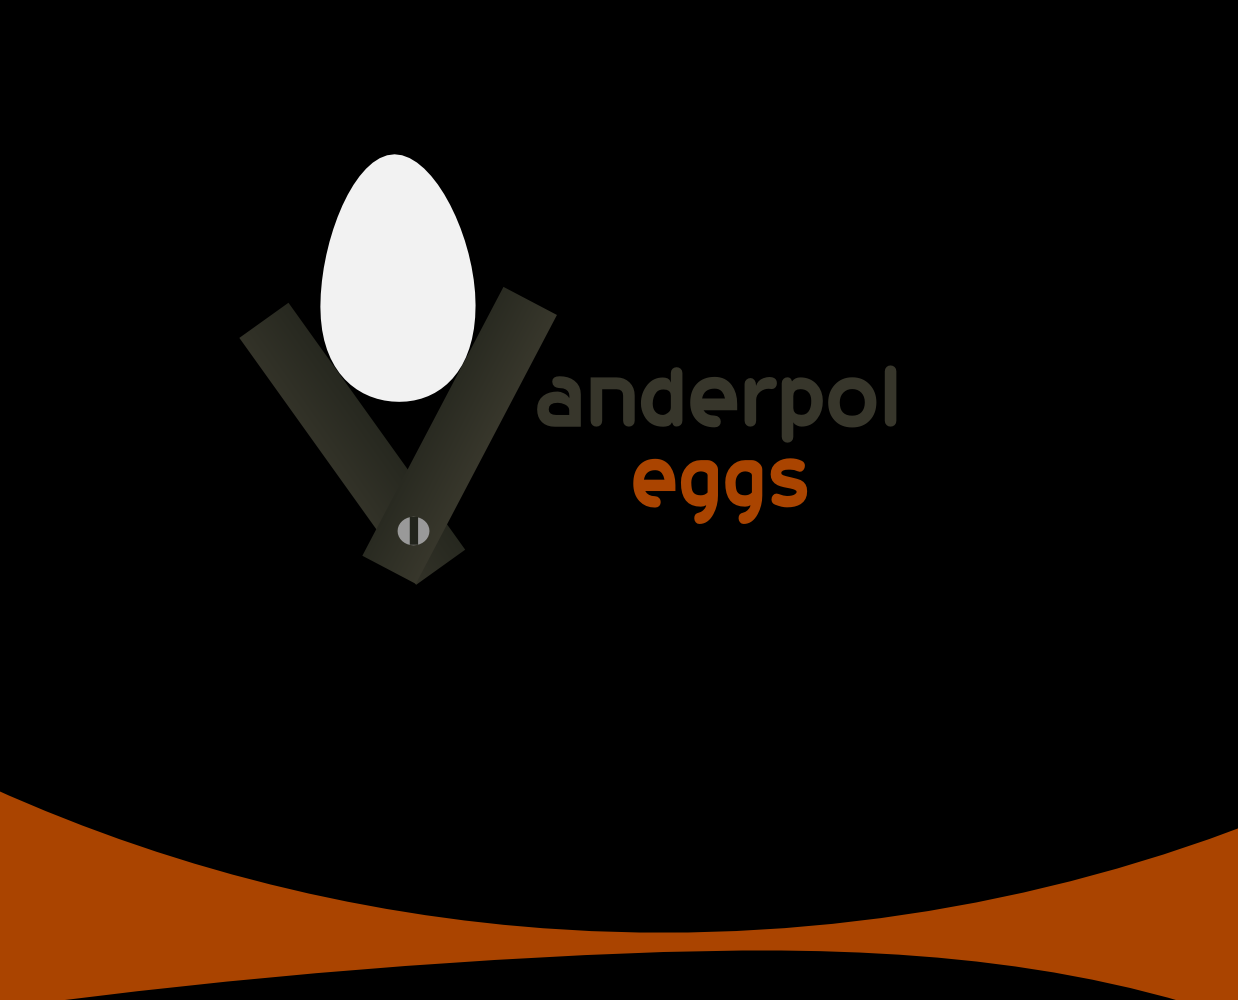 Logo Design by Arindam Khanda - Entry No. 65 in the Logo Design Contest Creative Logo Design for Vanderpol Food Group.